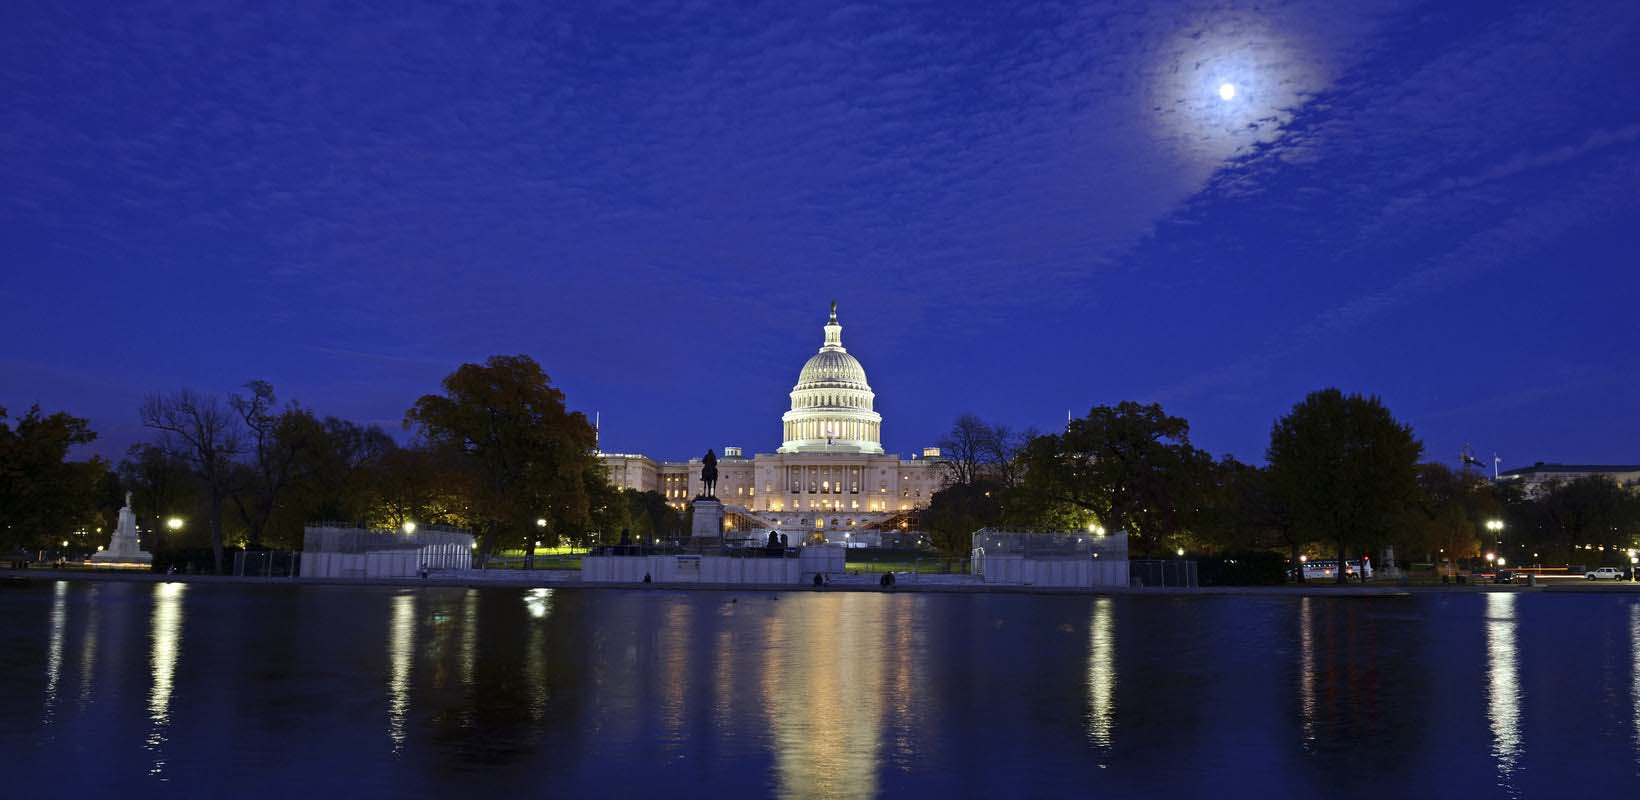 Monuments by night tour in Washington, D.C.